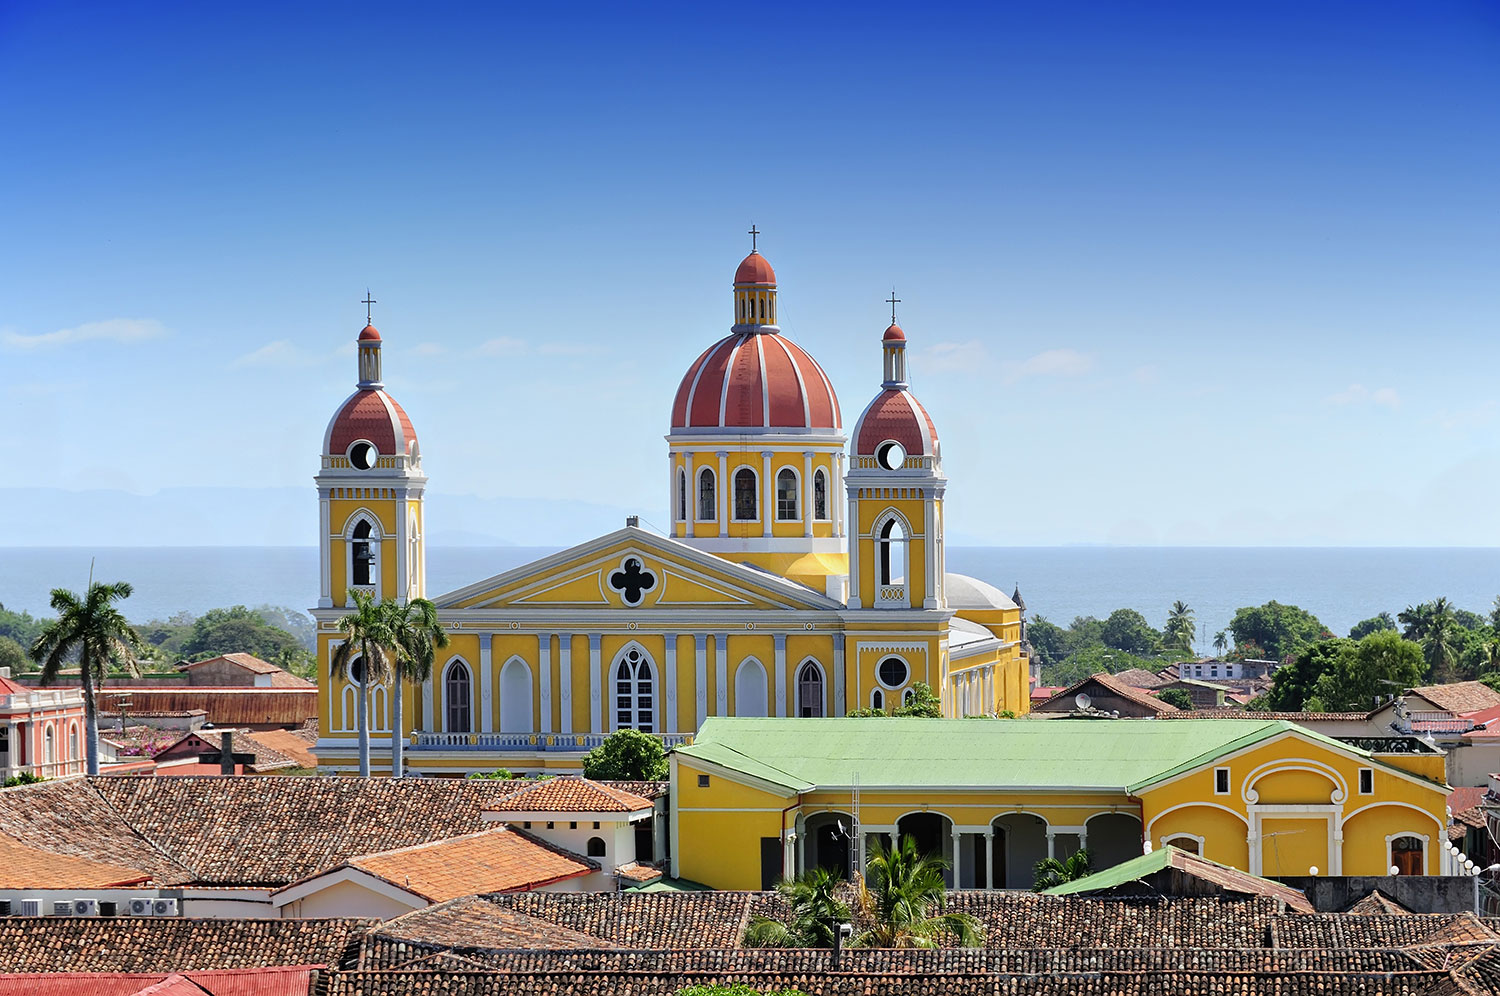 Aerial view of yellow multi-story buildings in Nicaragua